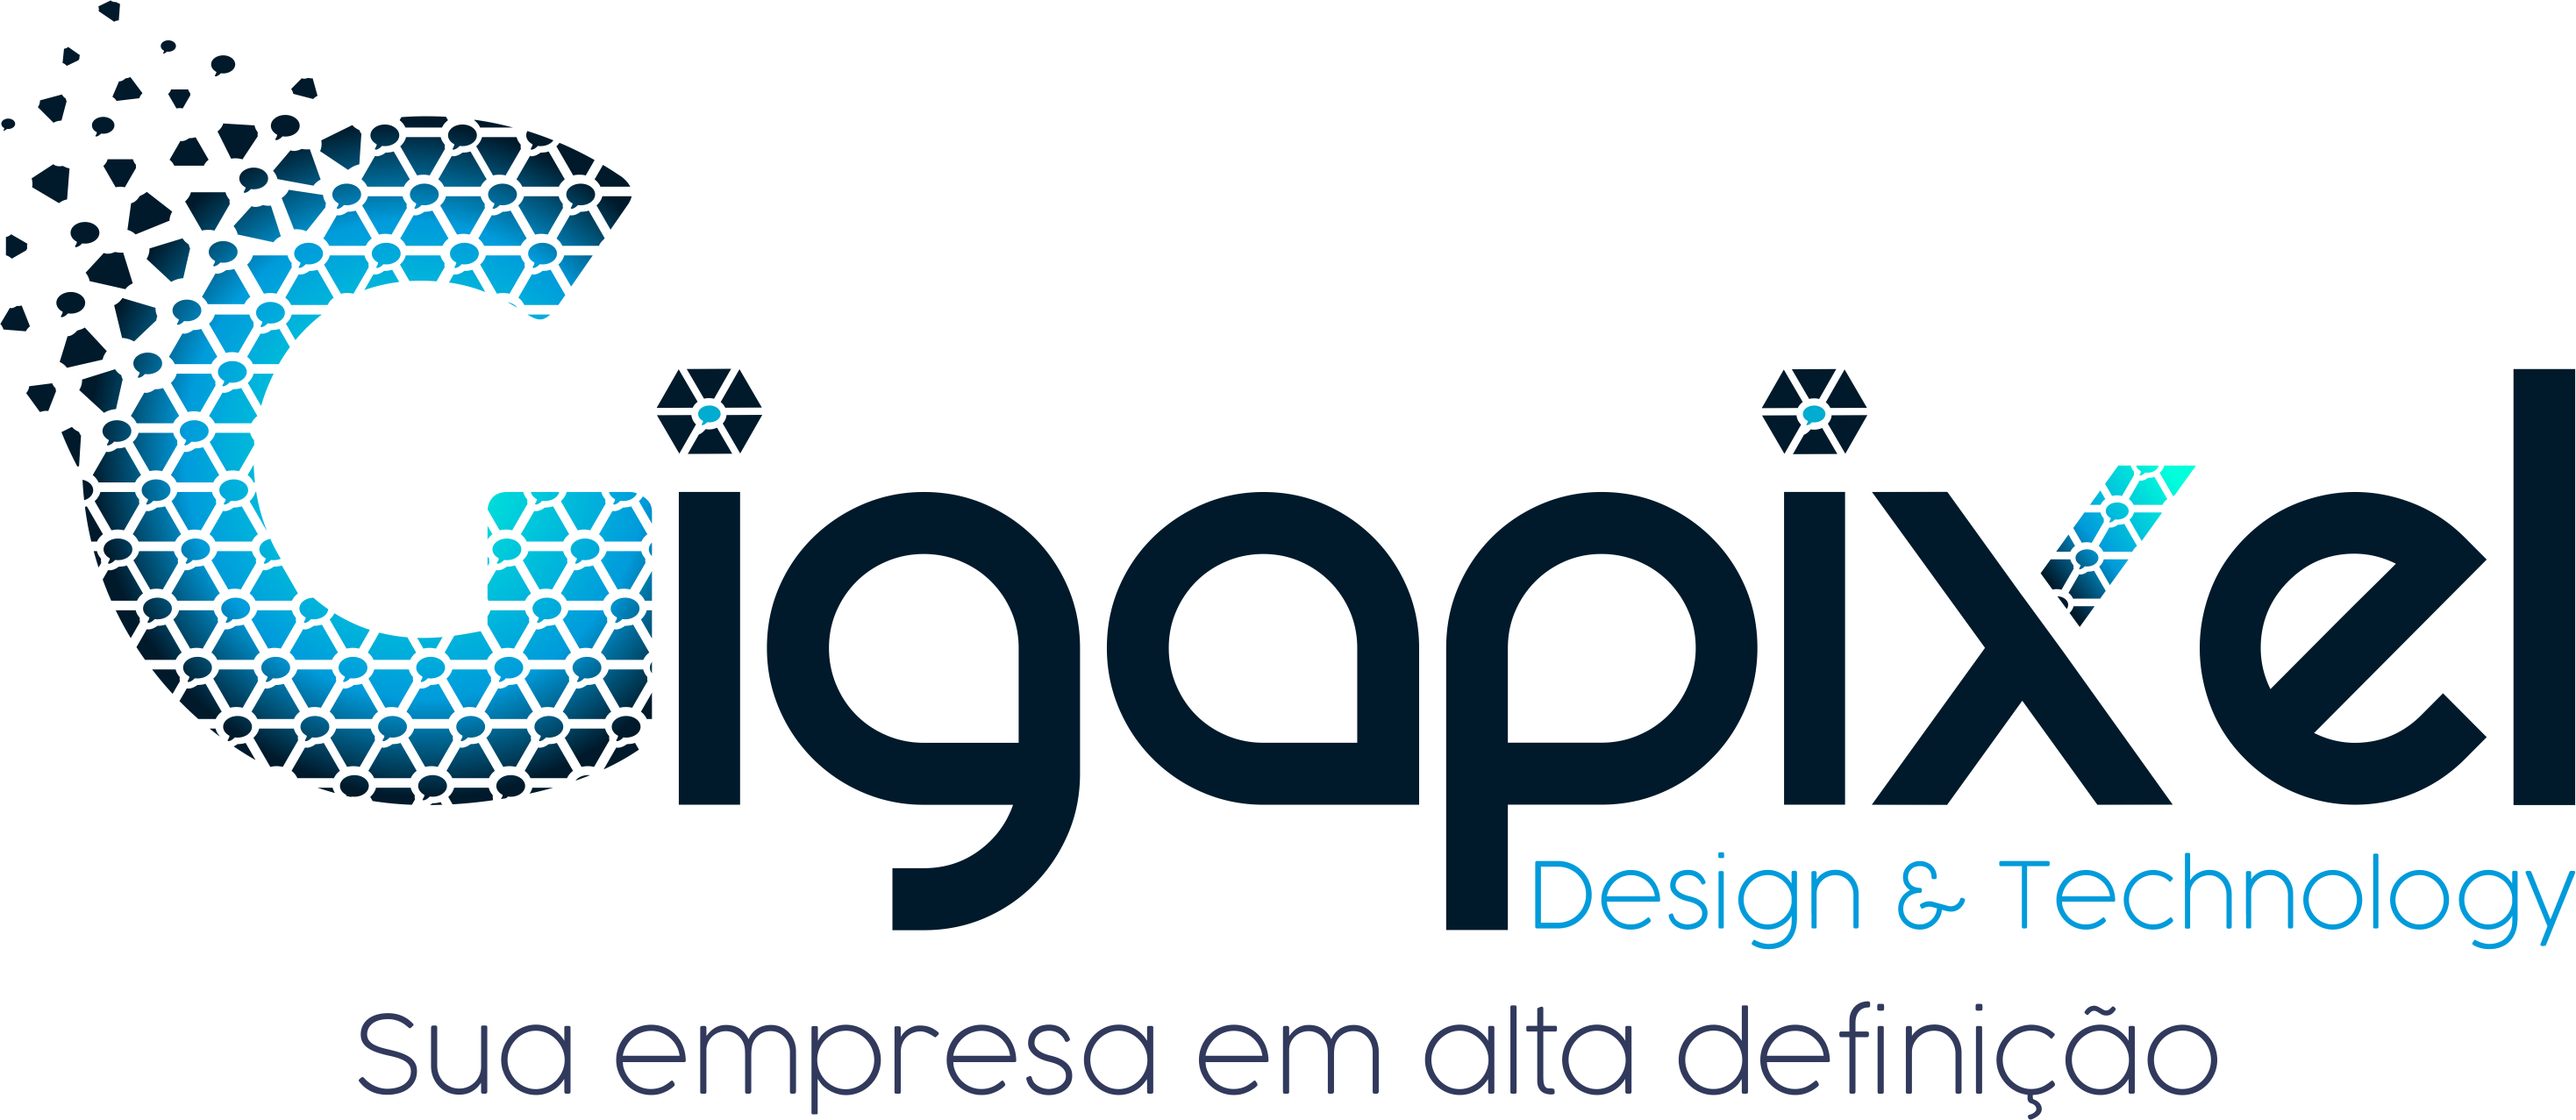 GigaPixel - Design & Technology